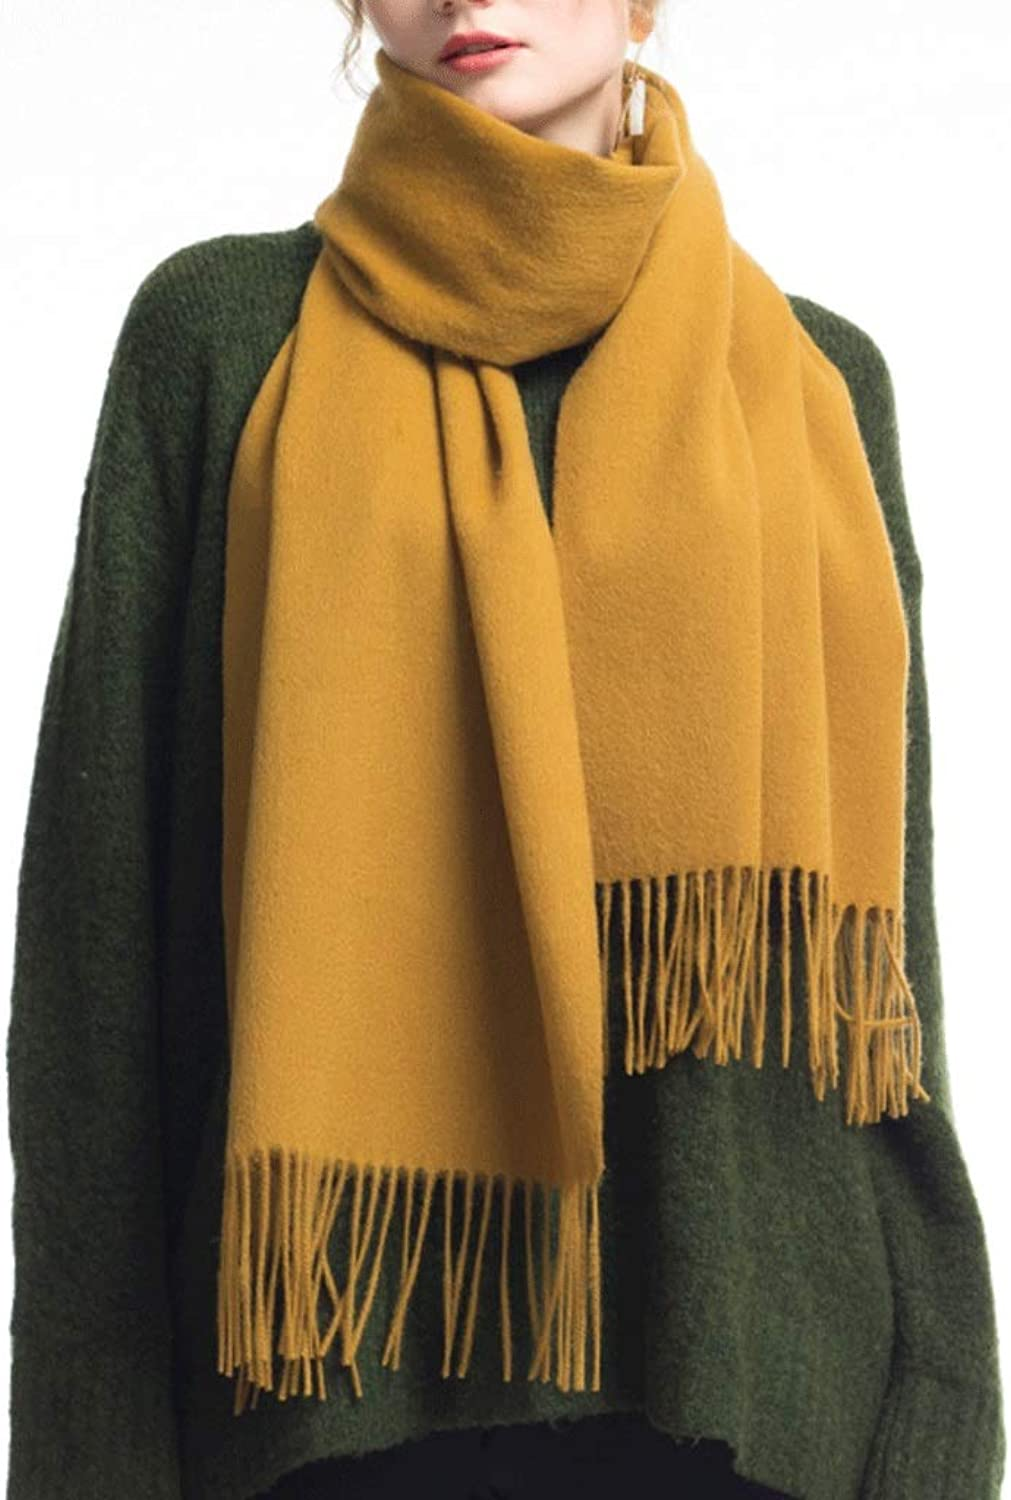 CCF Scarf Winter Thicken Soft Elegant Classic Scarves Woman Shawl V (color   Turmeric)